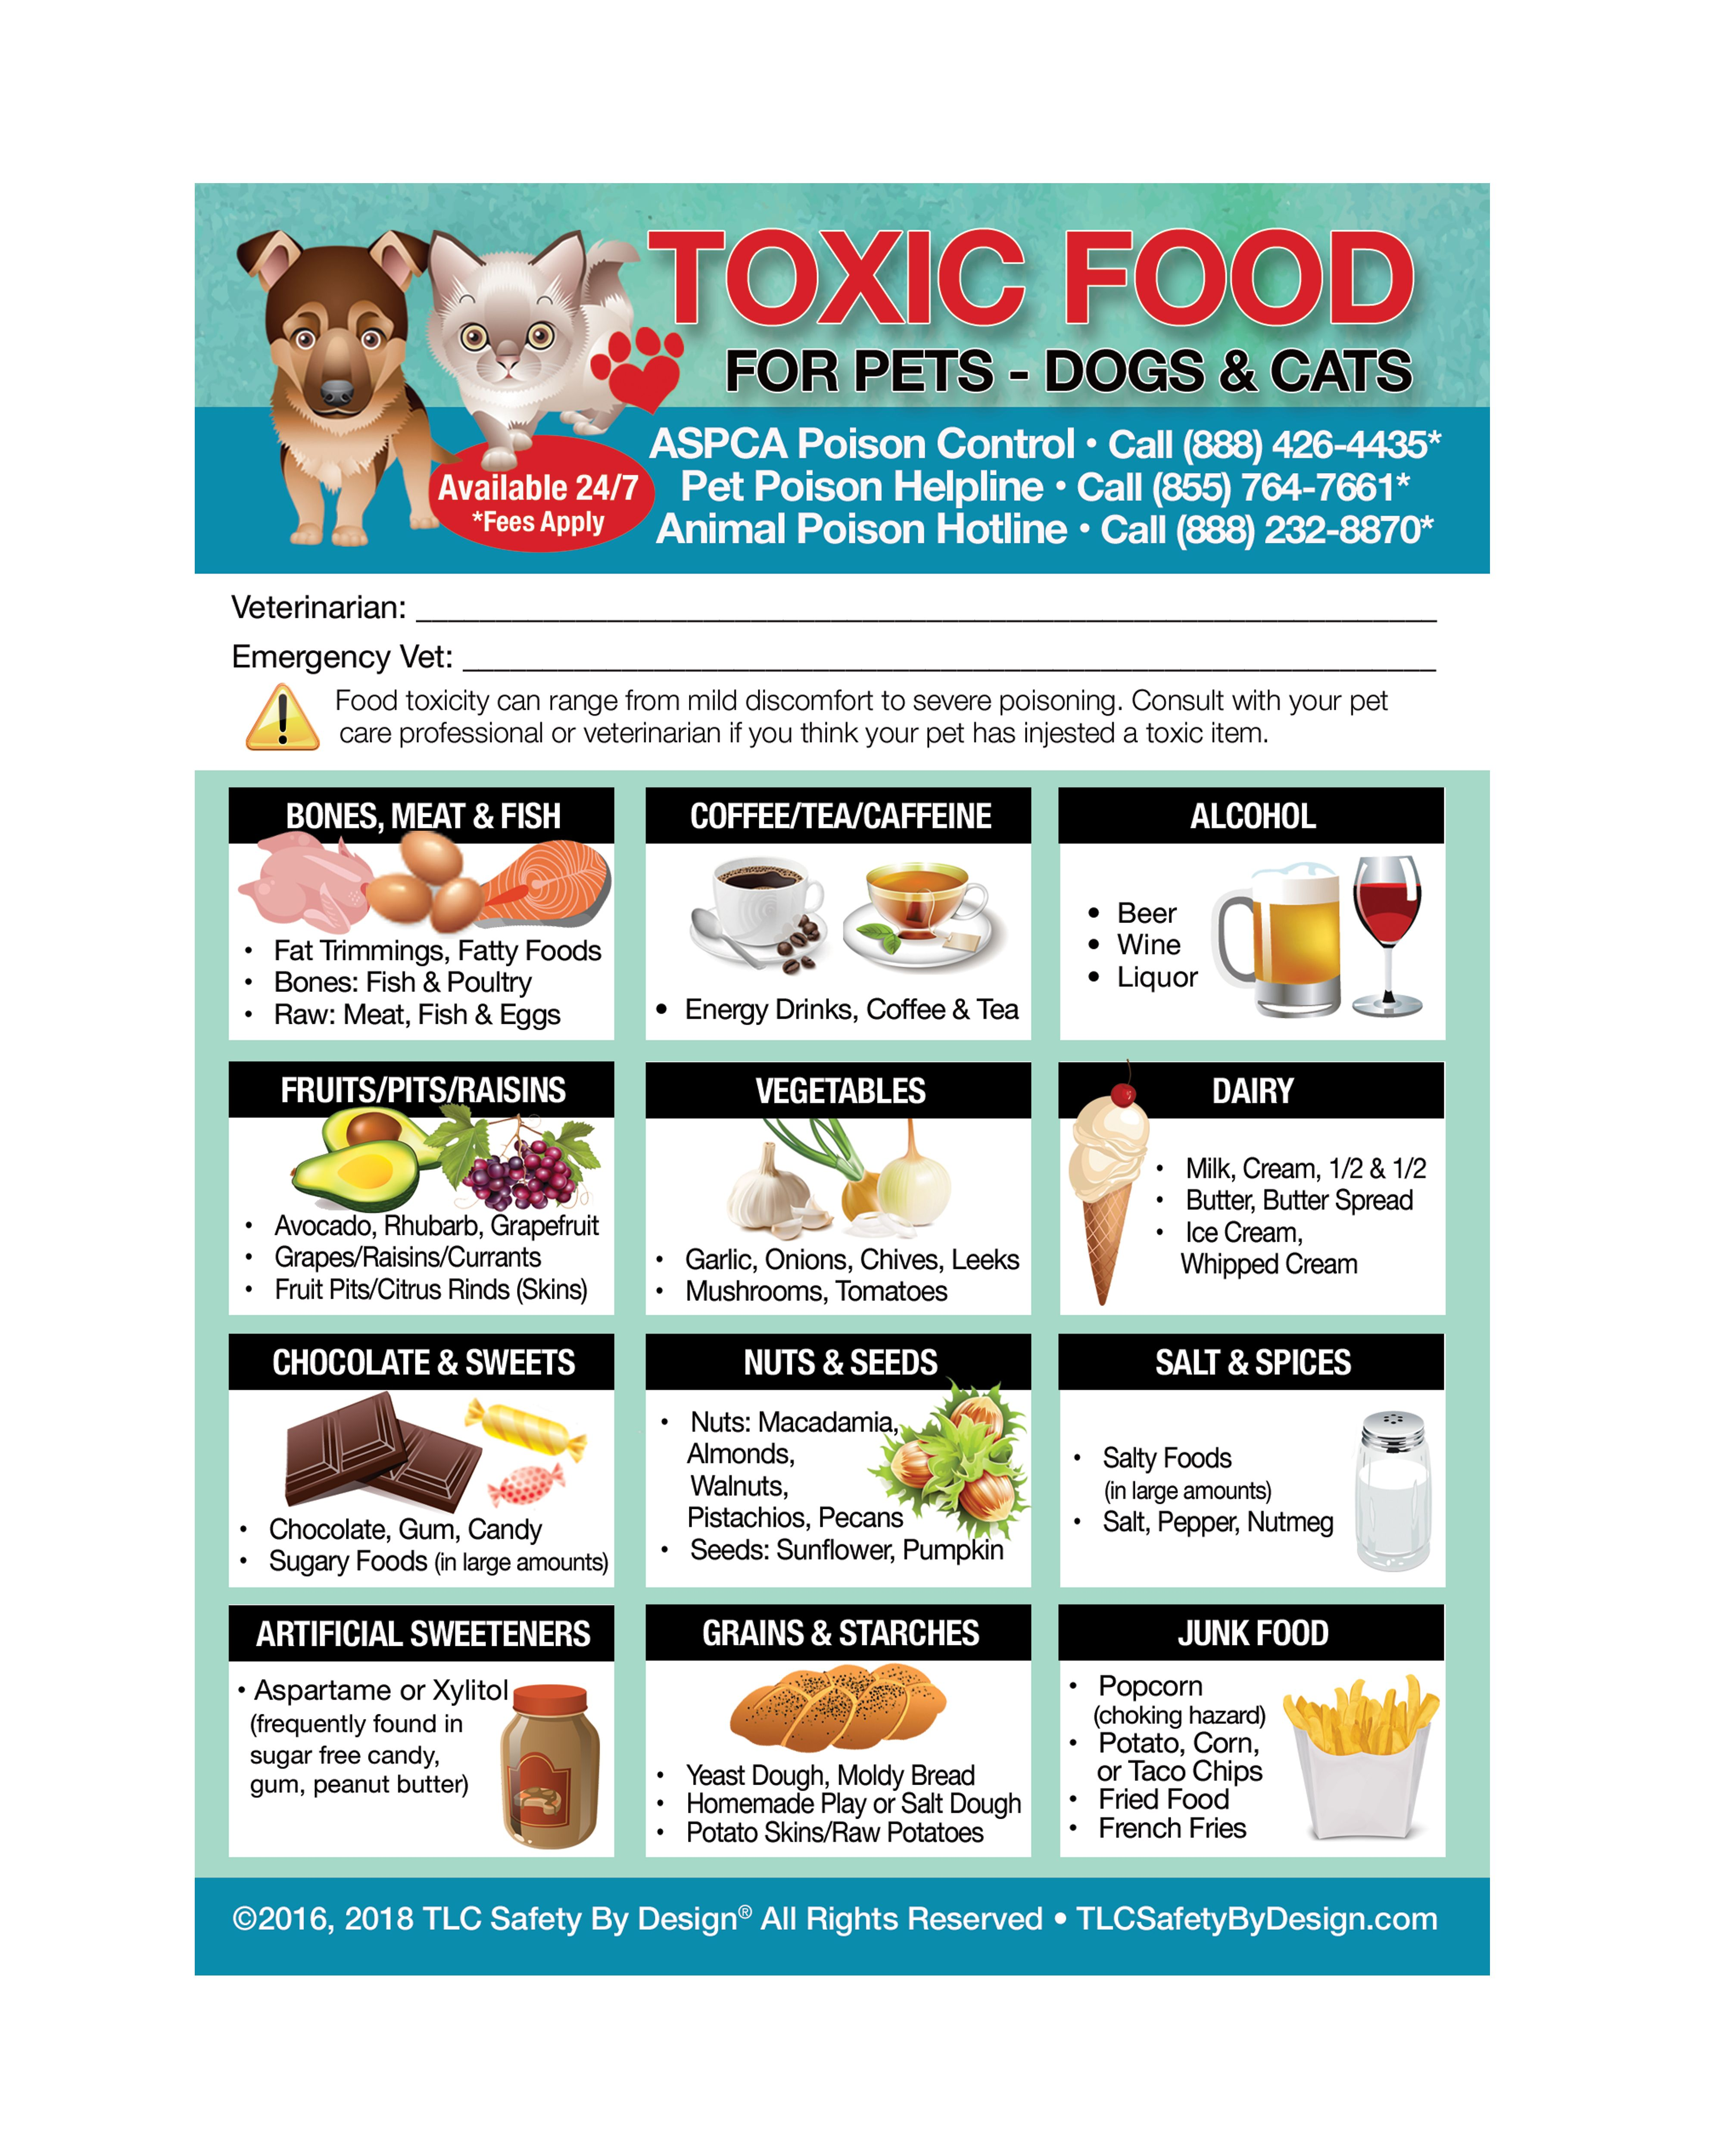 Enhanced Toxic Foods For Pets Dogs Cats 5 X7 Fridge Safety Magnet